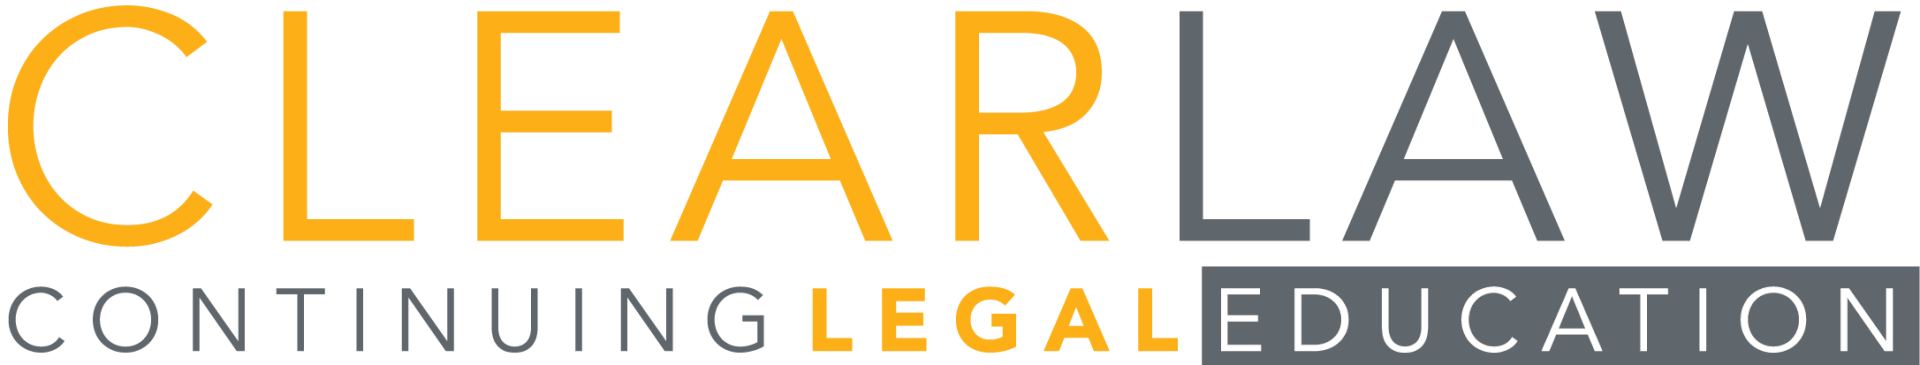 ClearlawSA